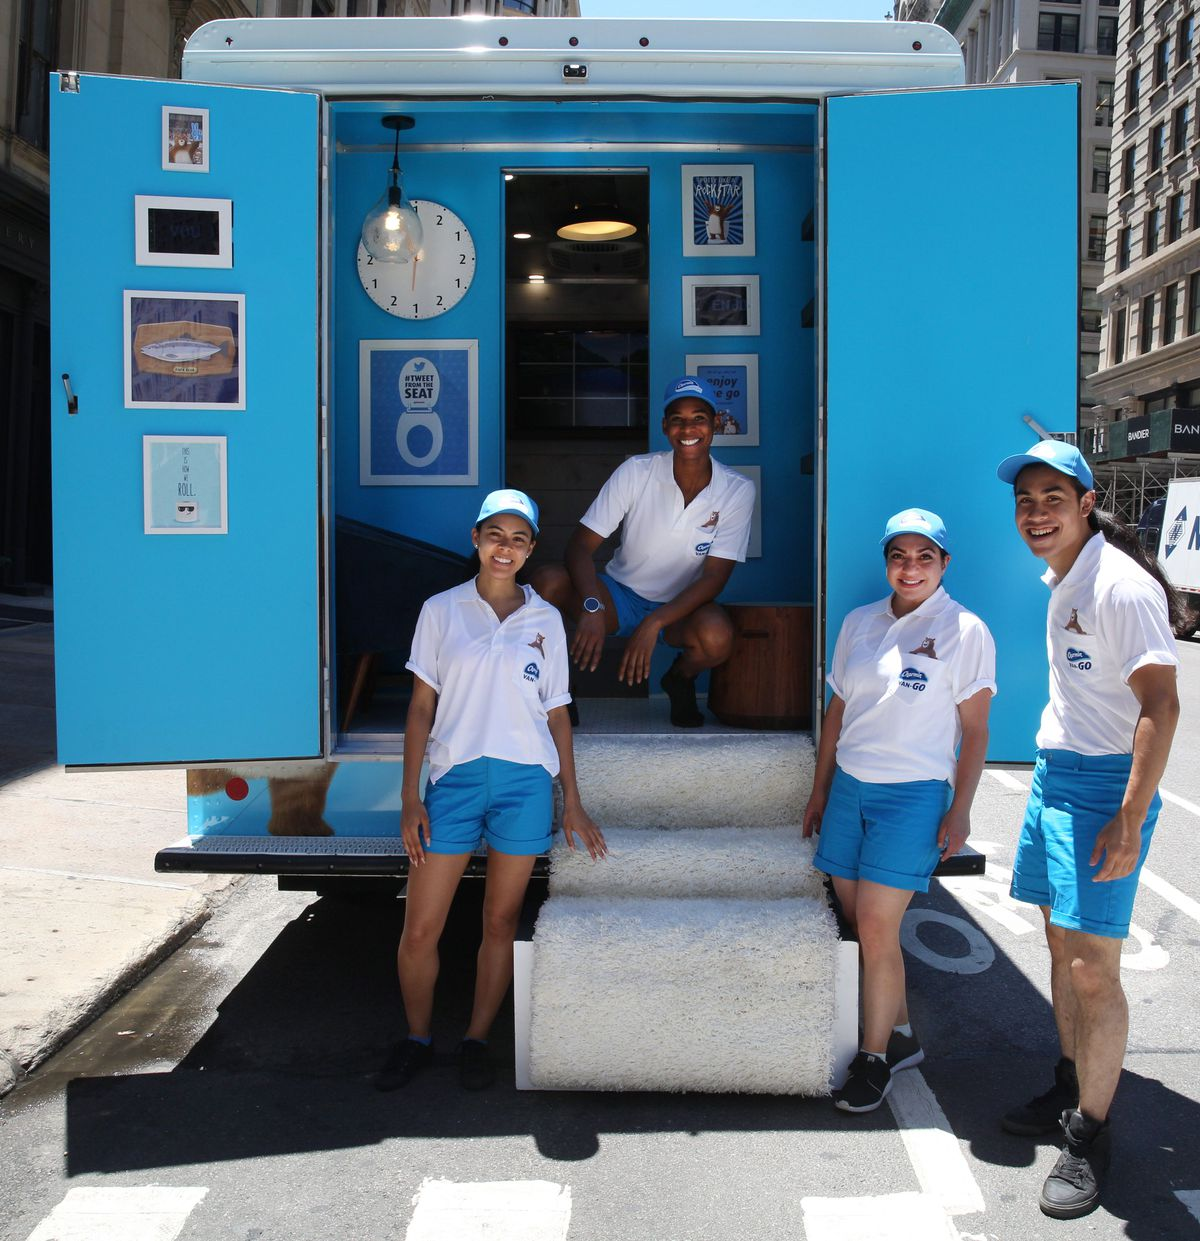 The Charmin Squad makes the mobile toilet experience even more extra.